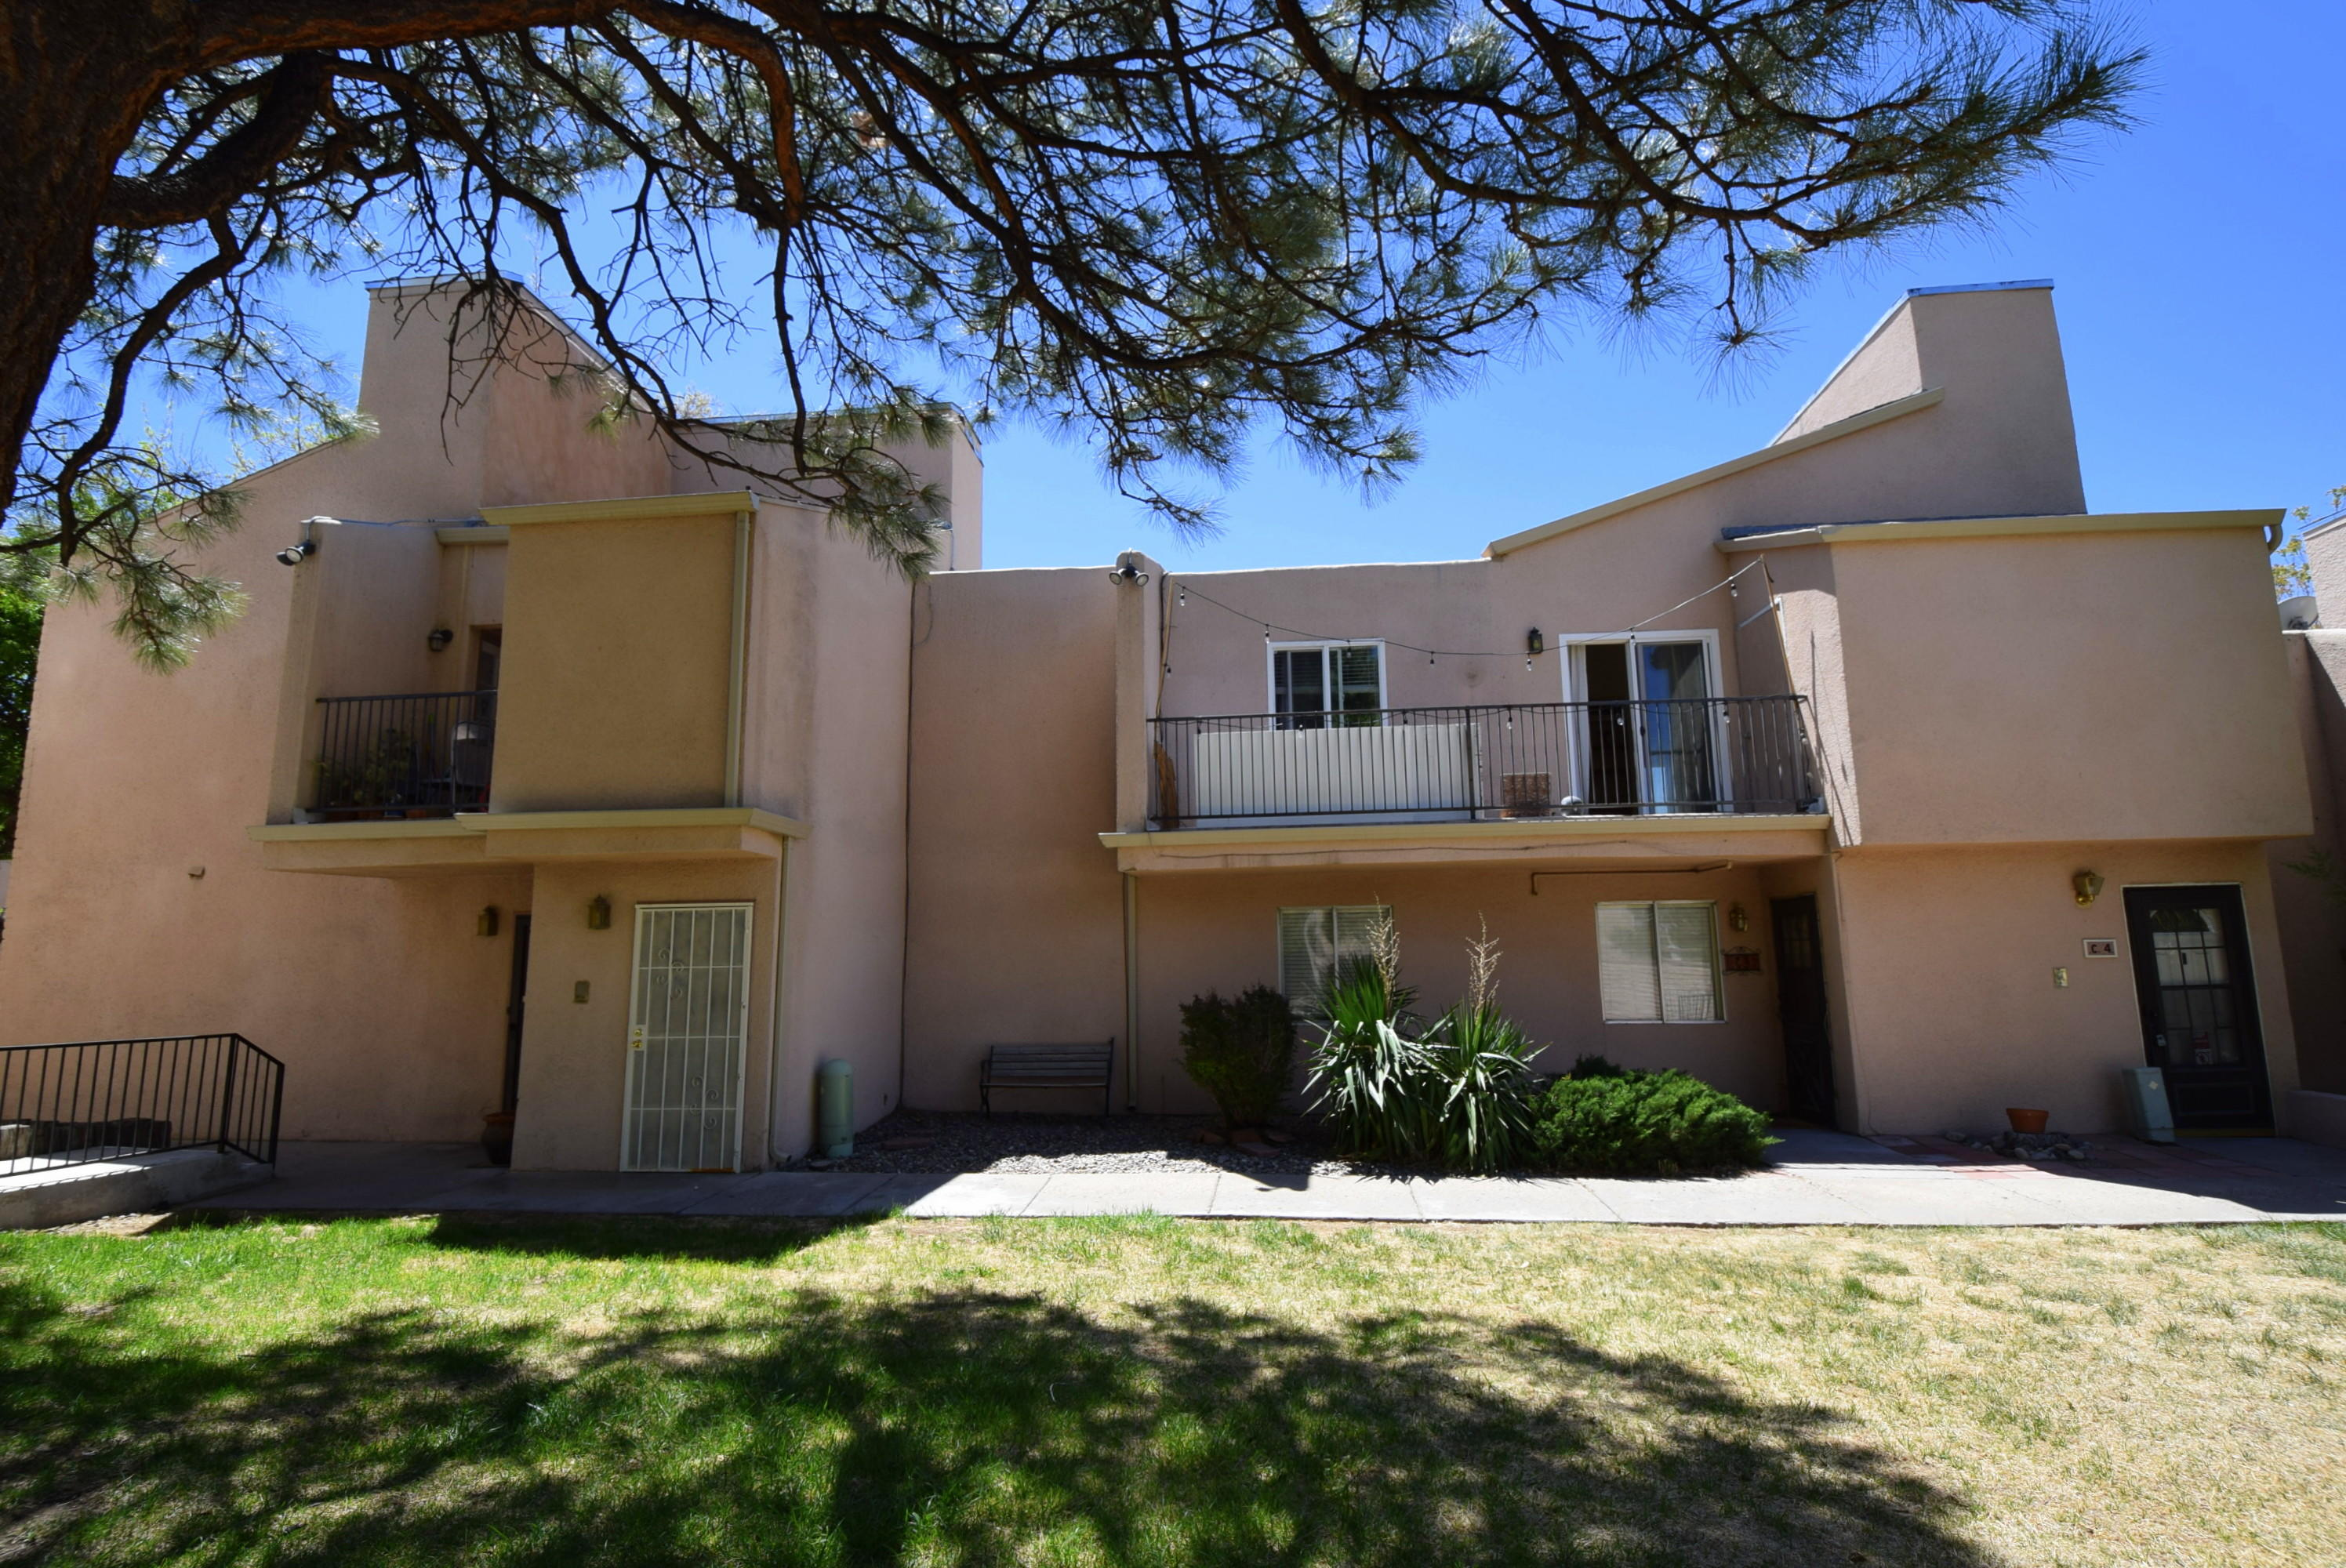 Ground floor unit with numerous updates! New carpet and new interior paint. Located across from the pool. Enclosed rear patio/yard. HOA fee incudes water, trash, exterior maintenance, water heater, pool and grounds.